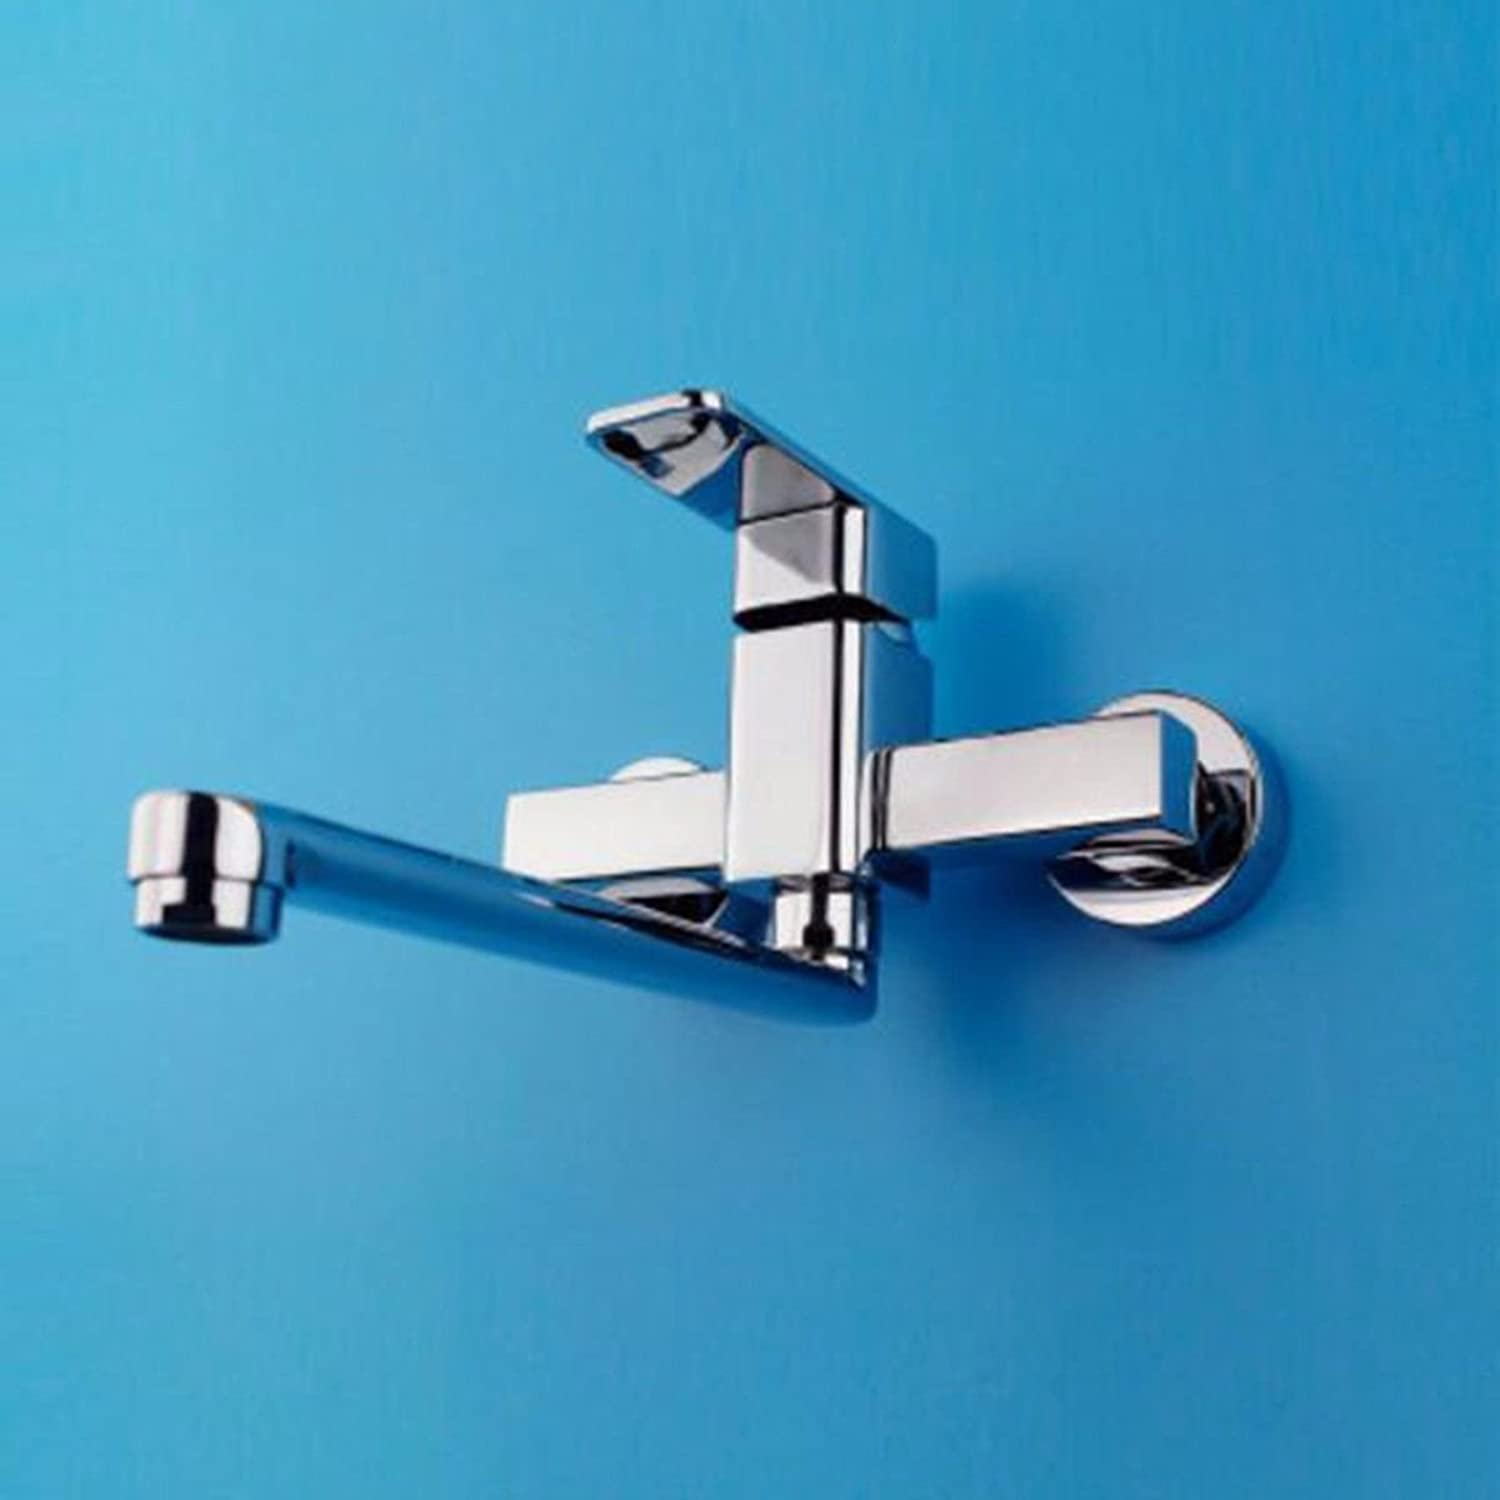 Gyps Faucet Basin Mixer Tap Waterfall Faucet Antique Bathroom Mixer Bar Mixer Shower Set Tap antique bathroom faucet The copper kitchen cold water taps into the wall two holes, hot and cold water mixi